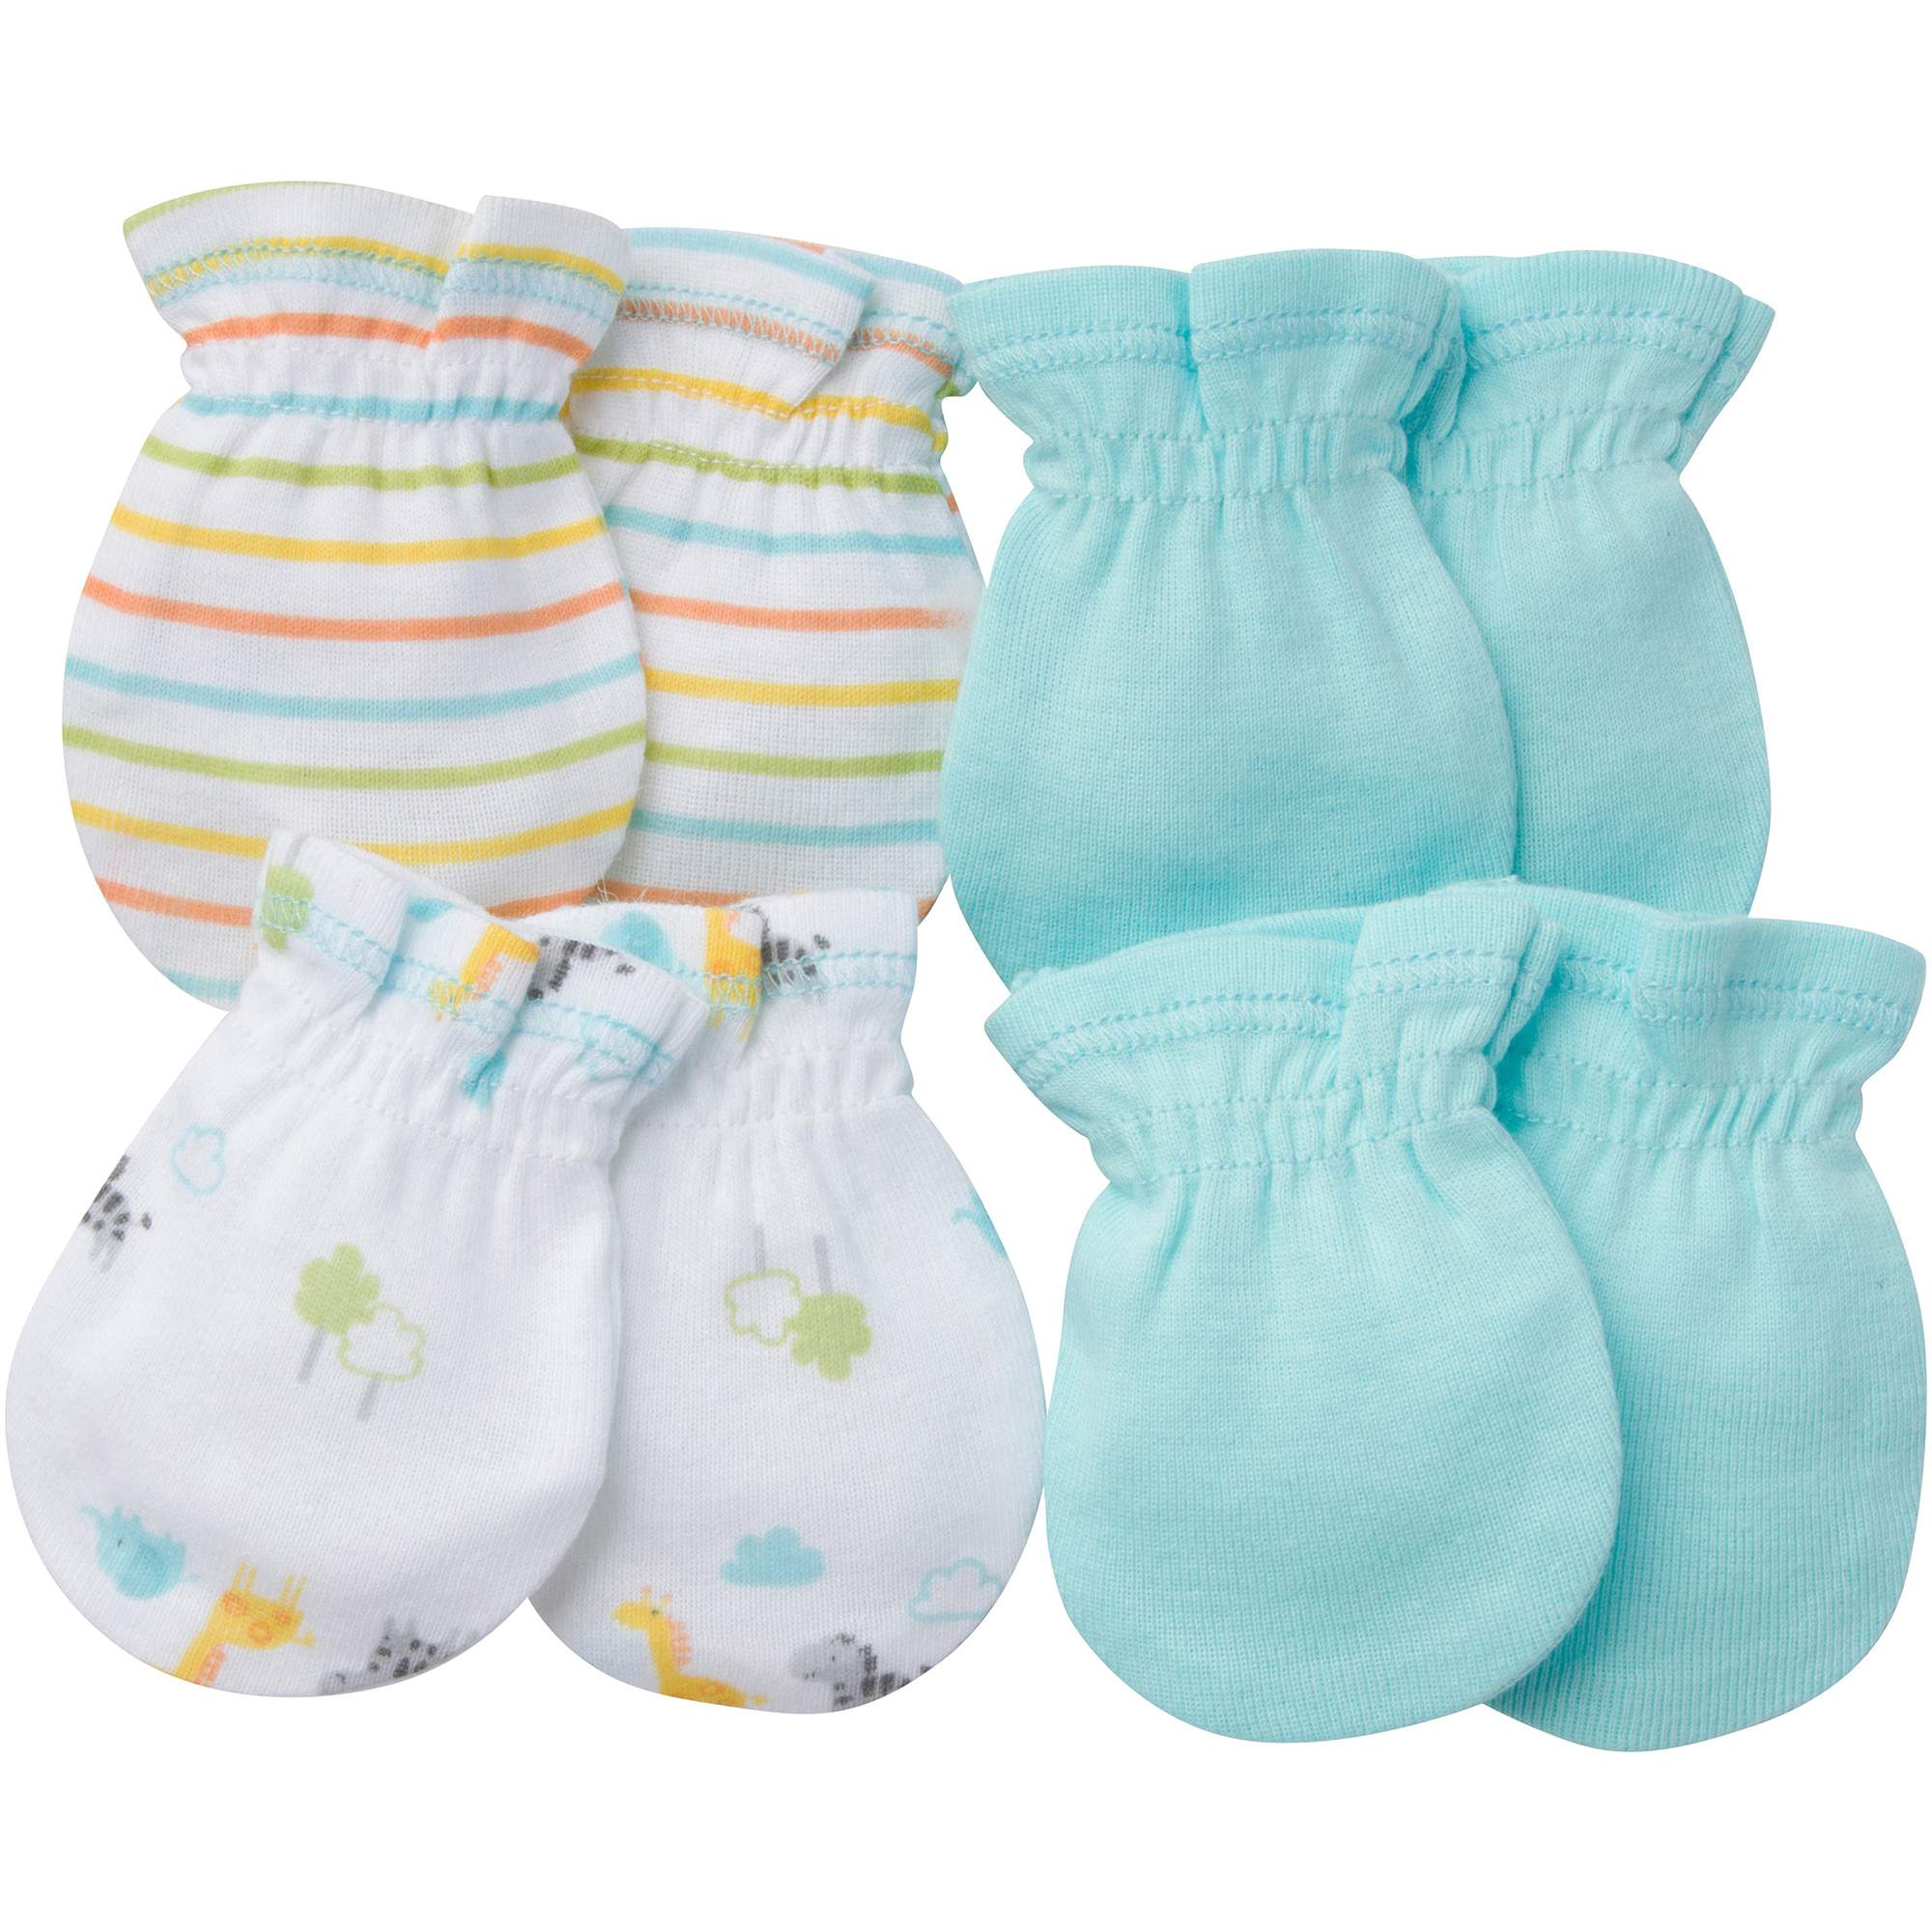 Image of Gerber Newborn Baby Boy or Girl Unisex Assorted Mittens, 4-Pack